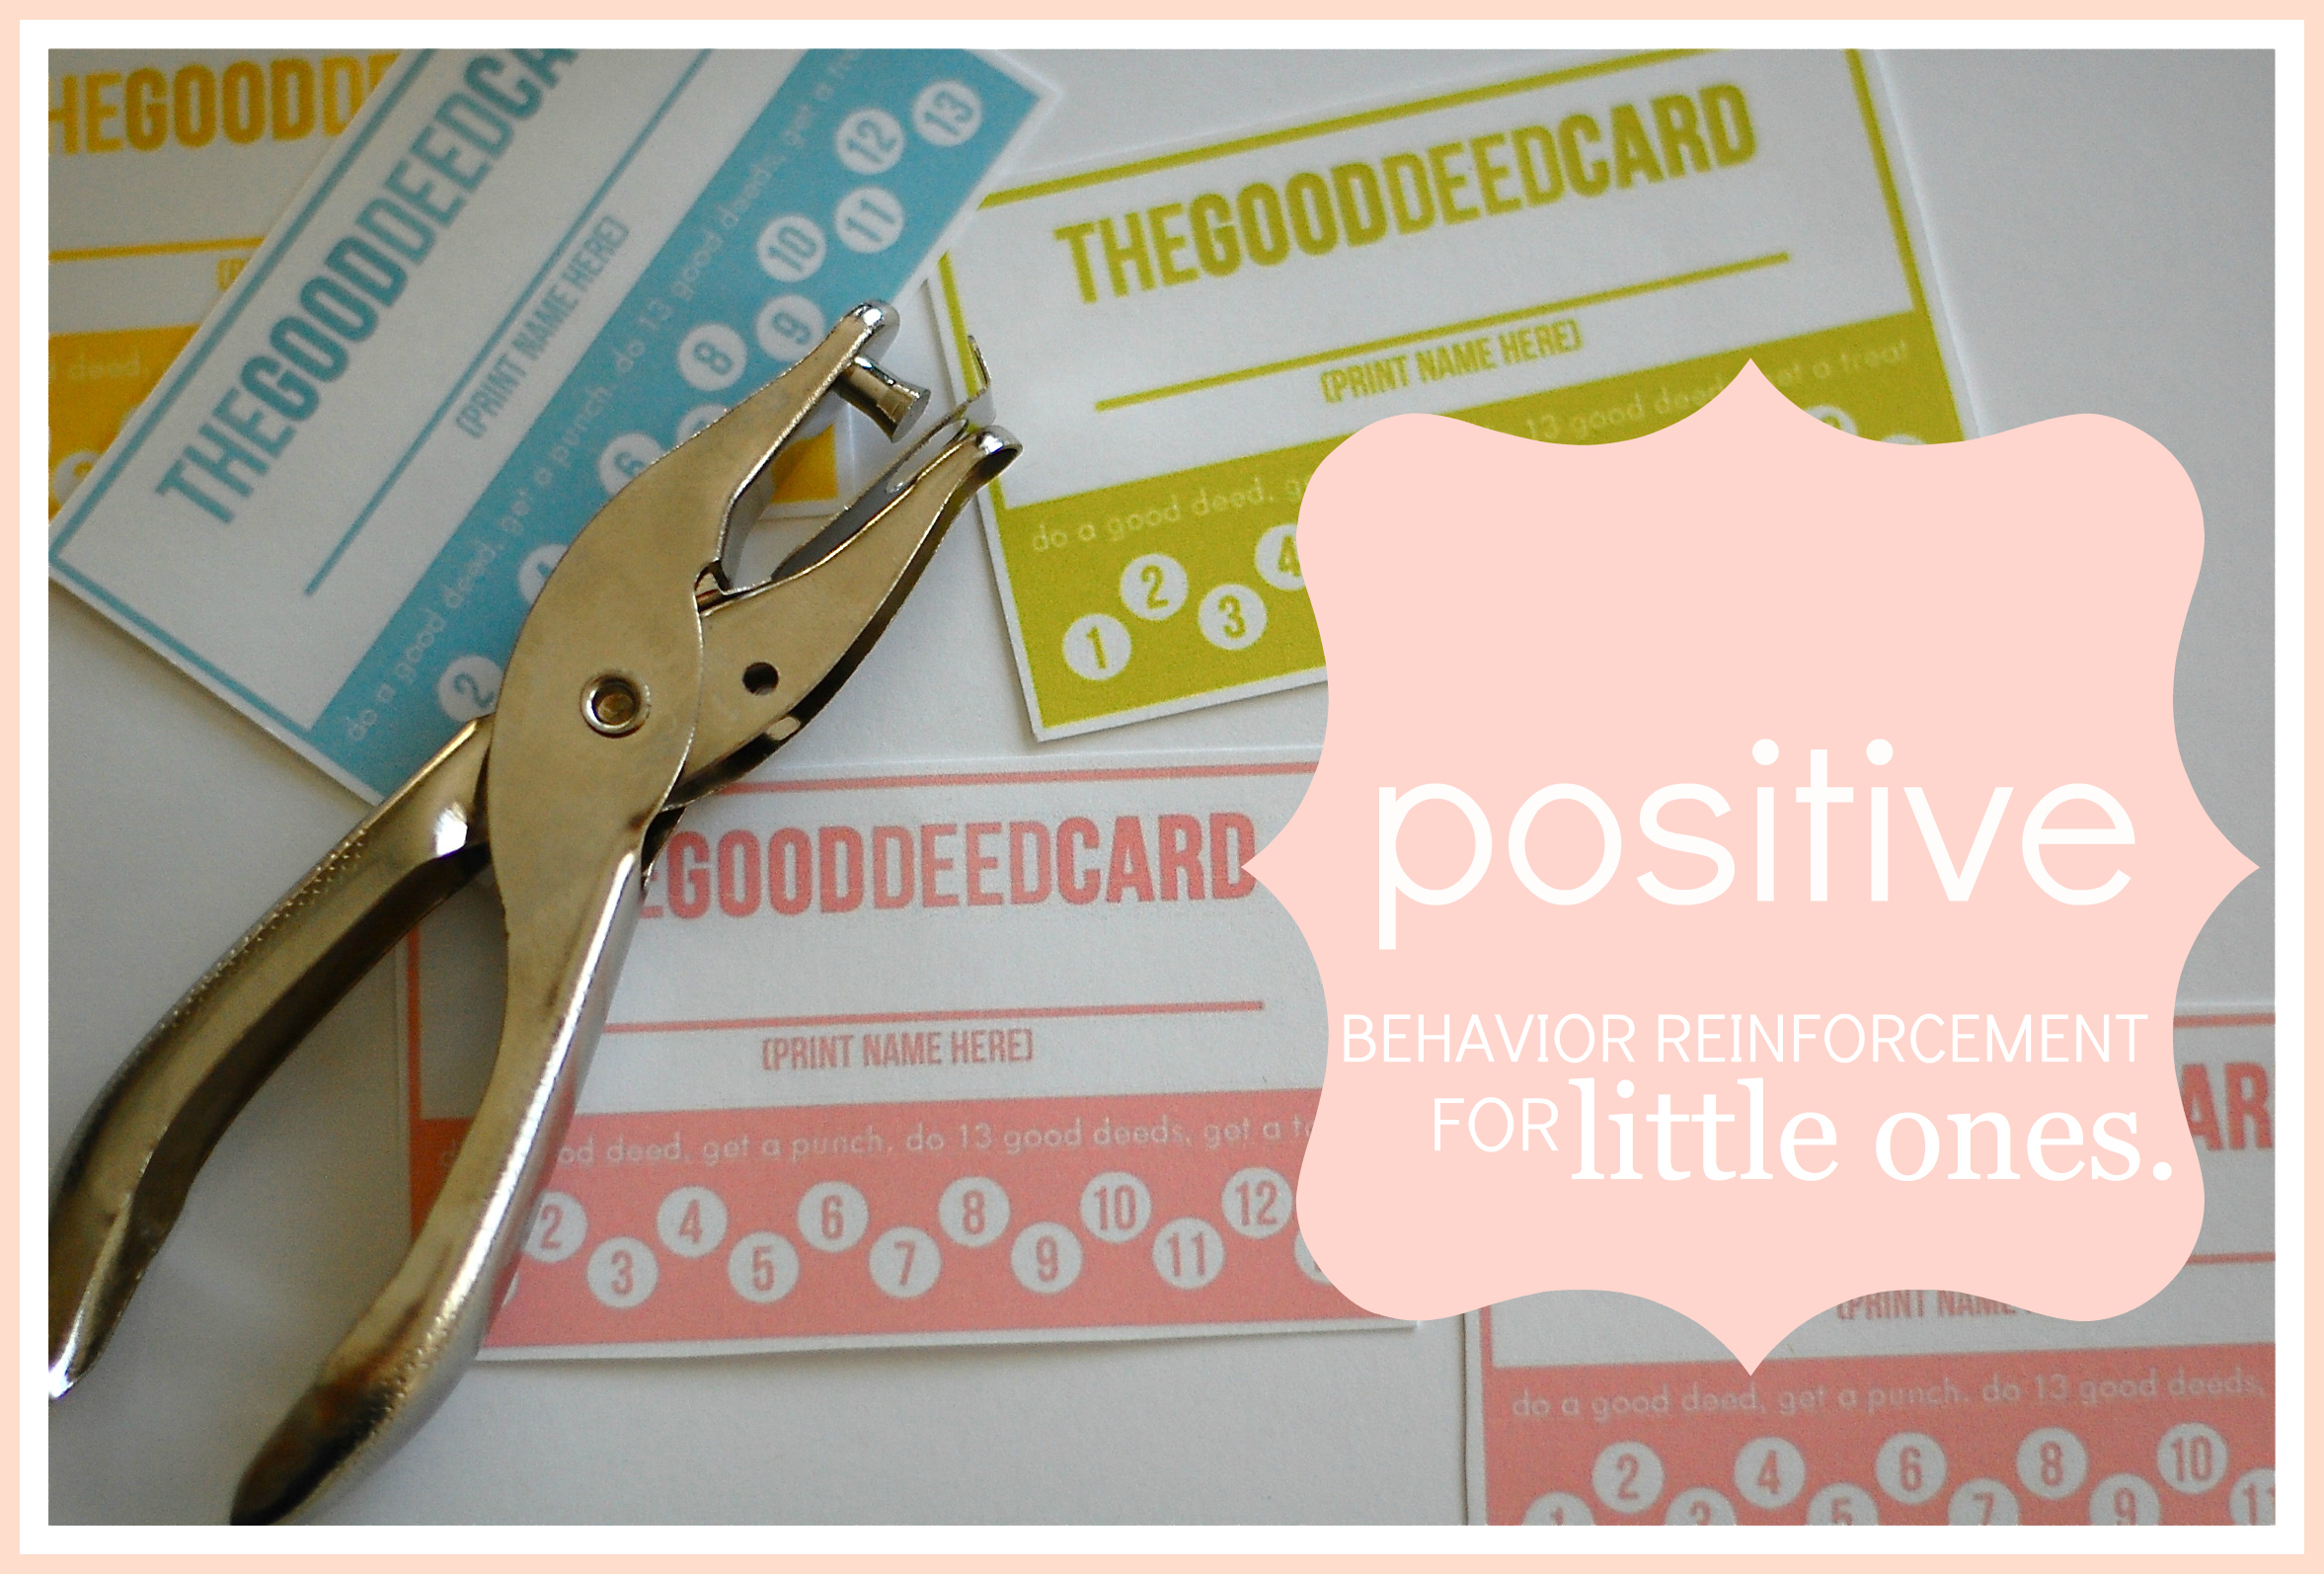 positive behavior reinforcement positive parenting: getting your little ones to listen (specifically those 4 year olds!!) with the good deed card!